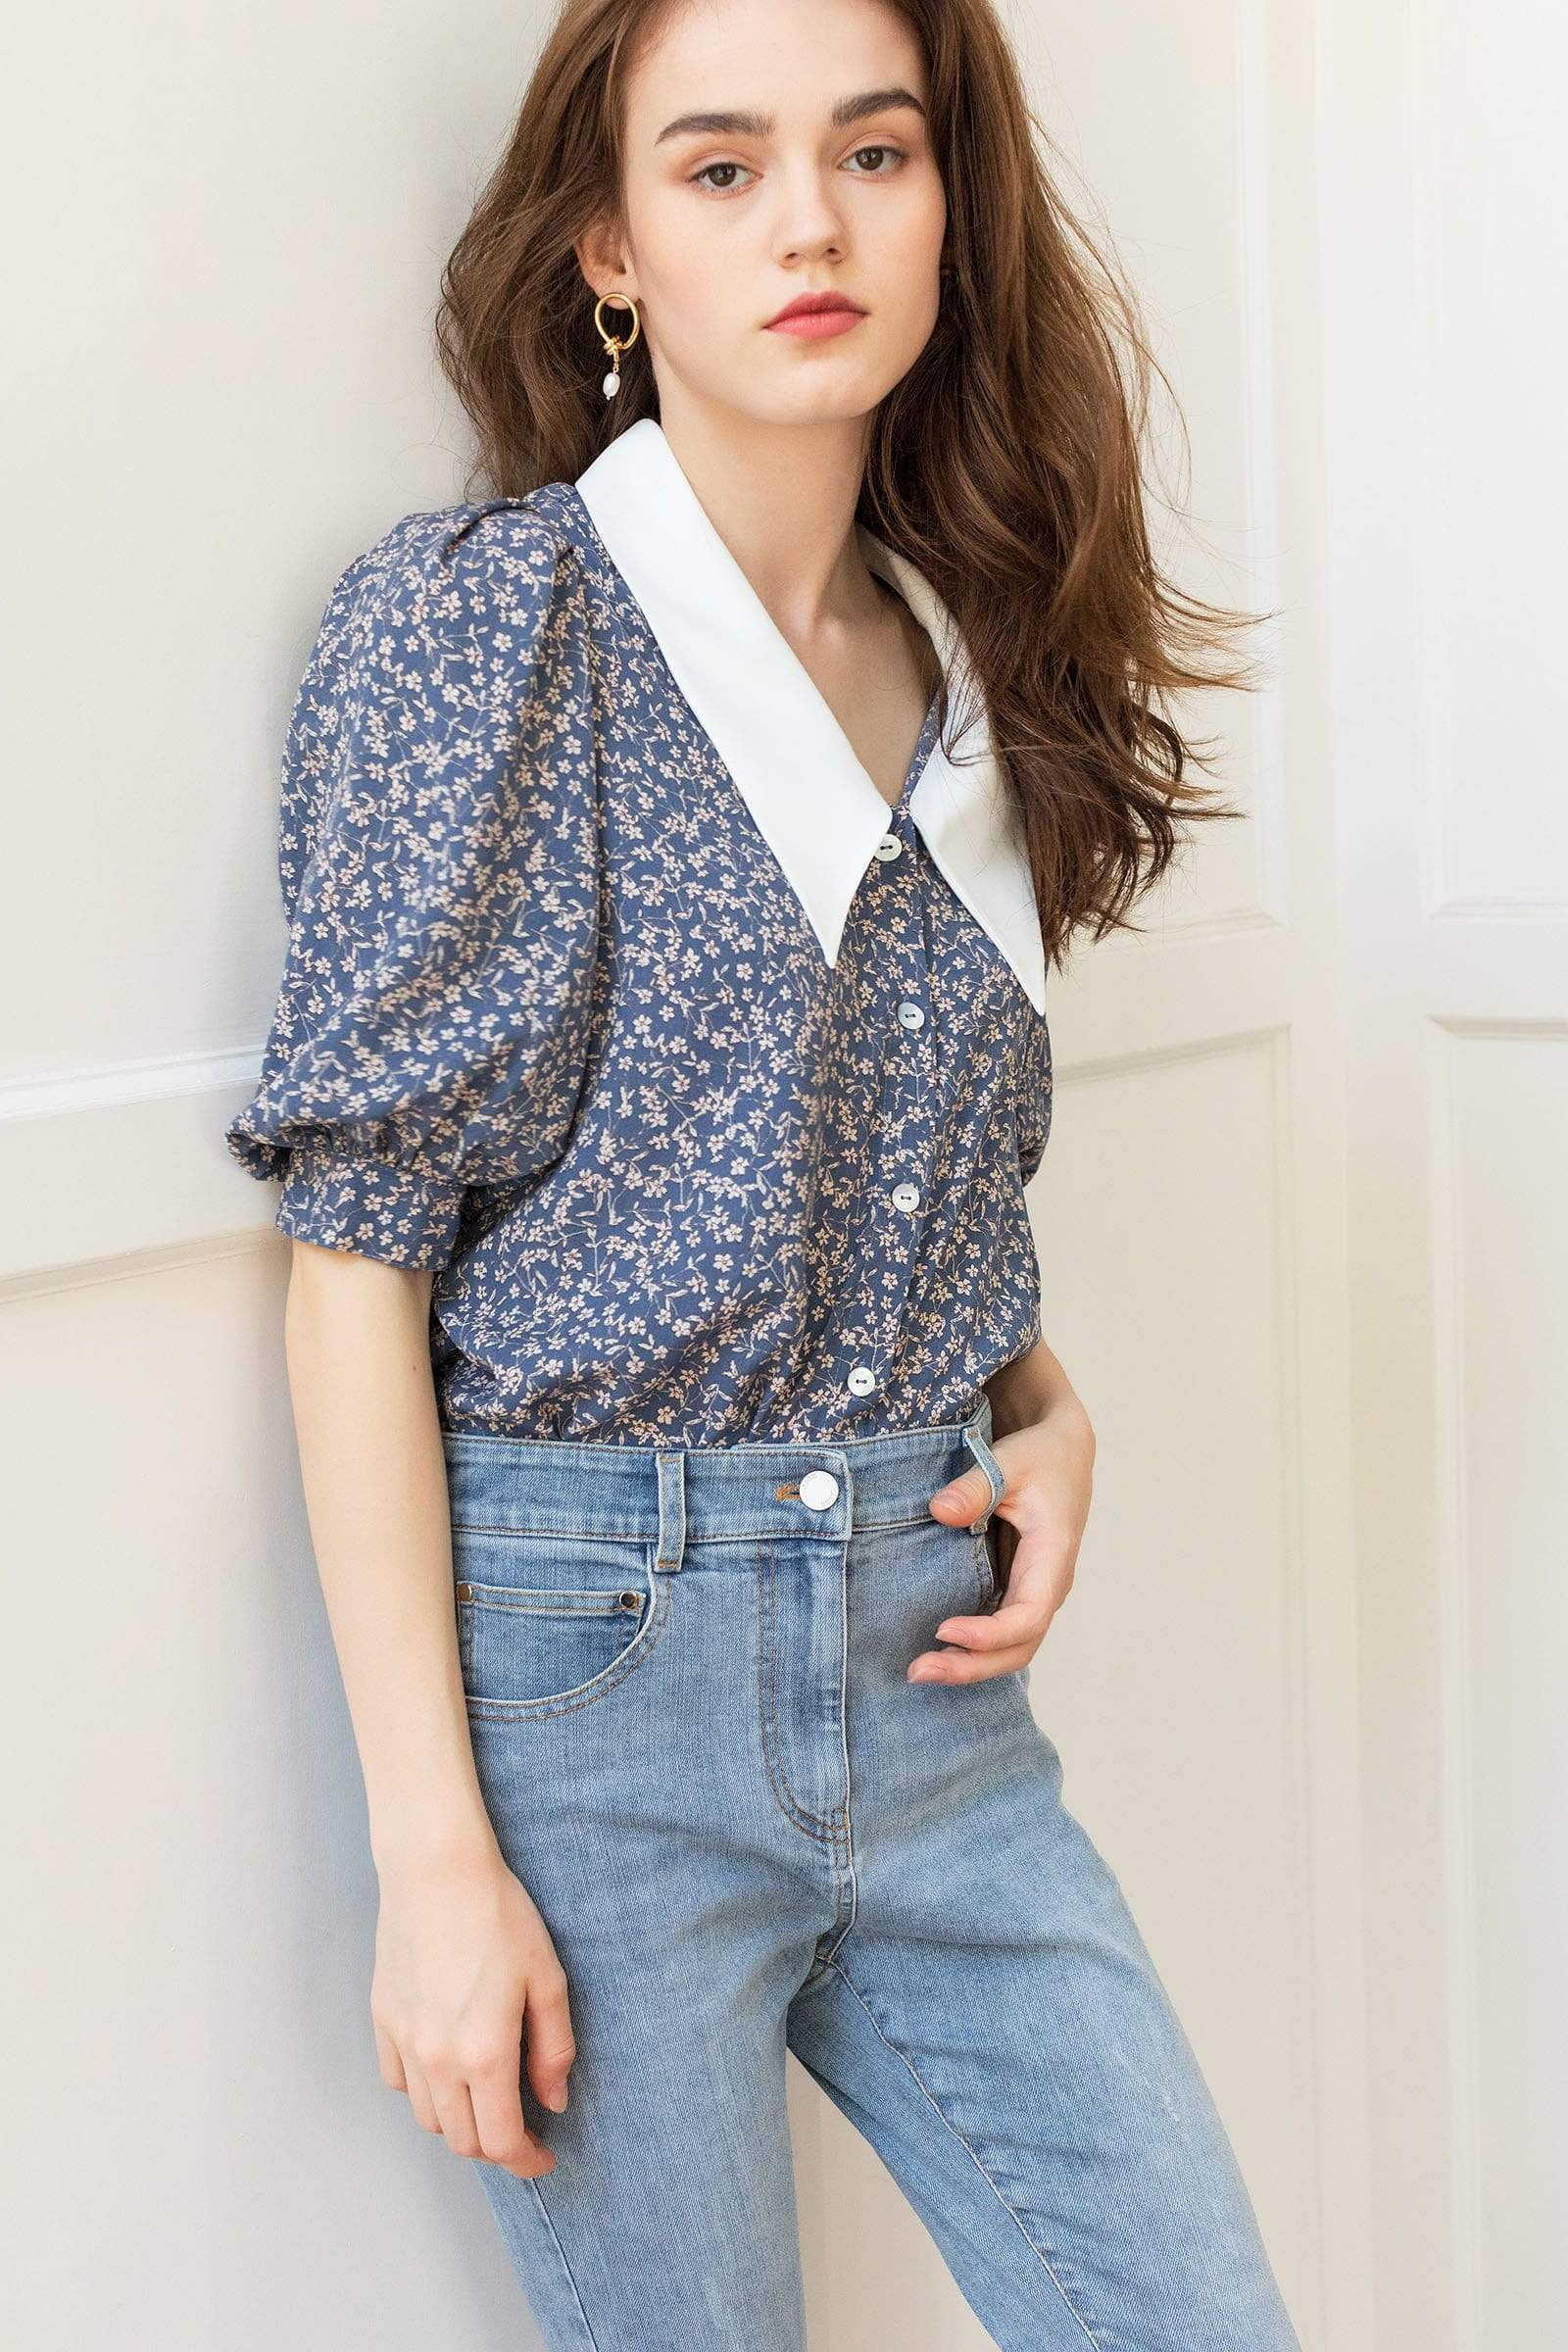 Wellesley Floral Collar Blouse